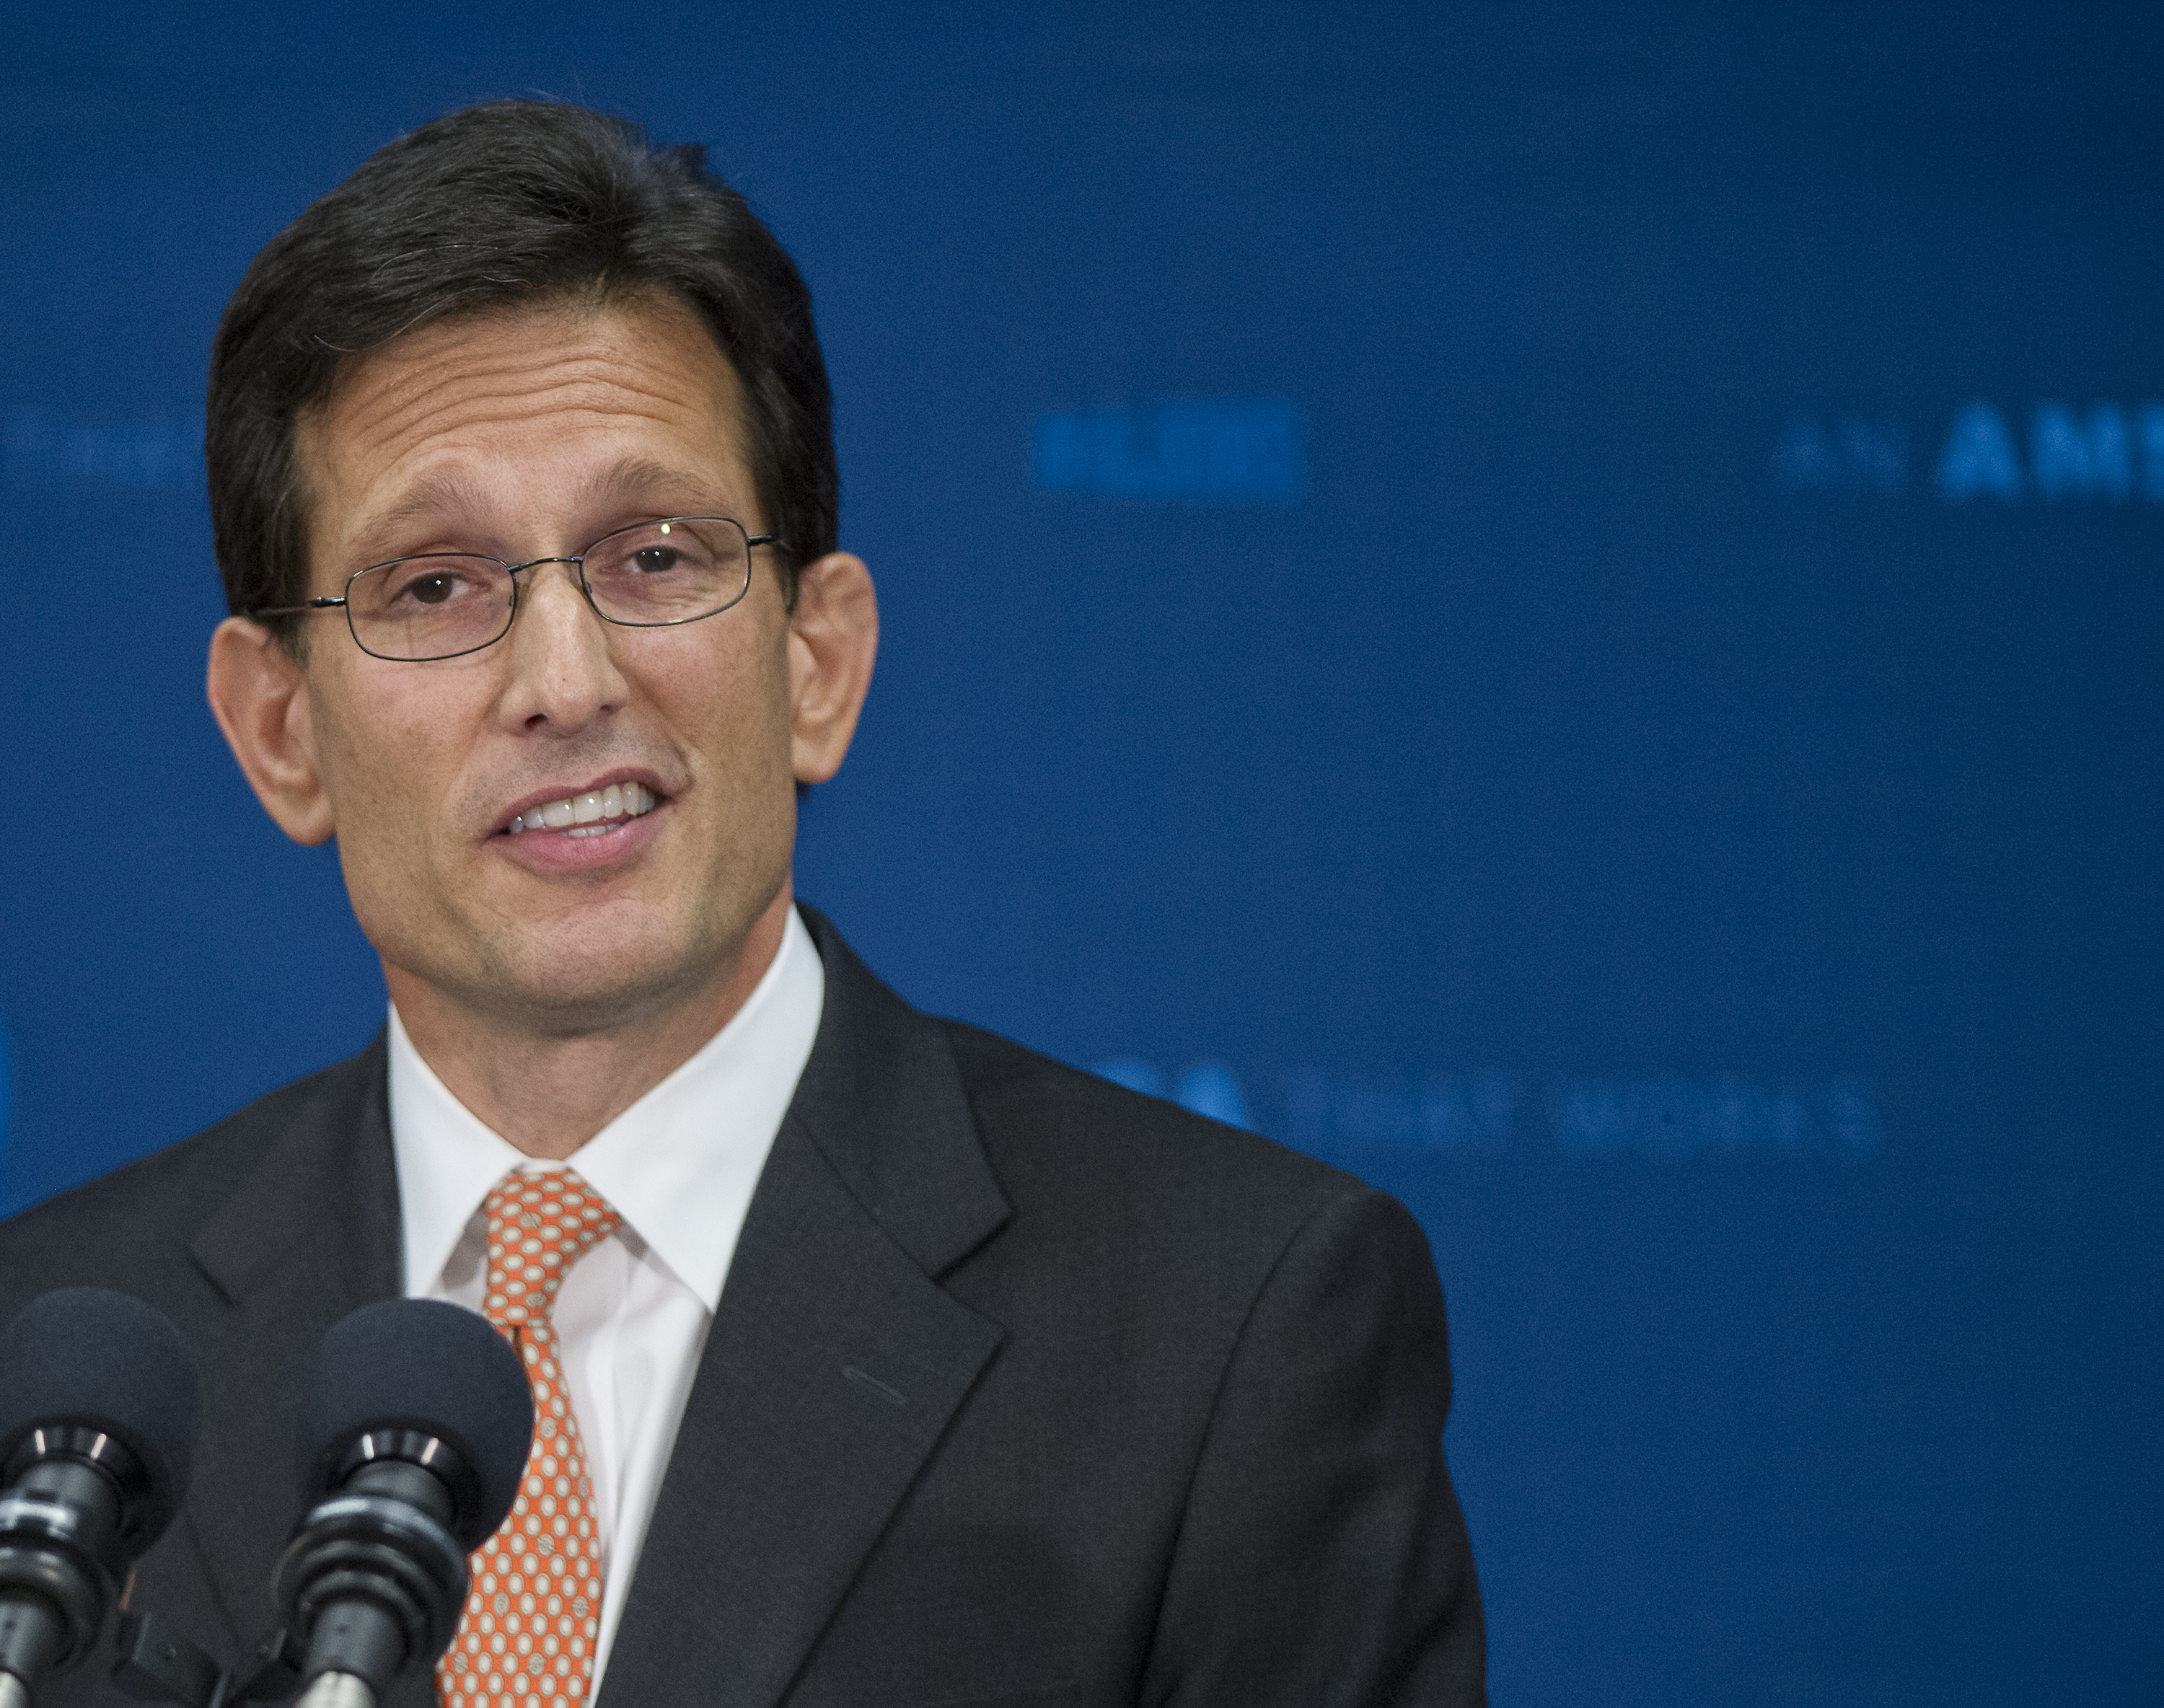 US House Majority Leader, Republican from Virginia Eric Cantor, holds a news conference where he announced his resignation effective 31 July, on Capitol Hill in Washington DC, on June 11, 2014.